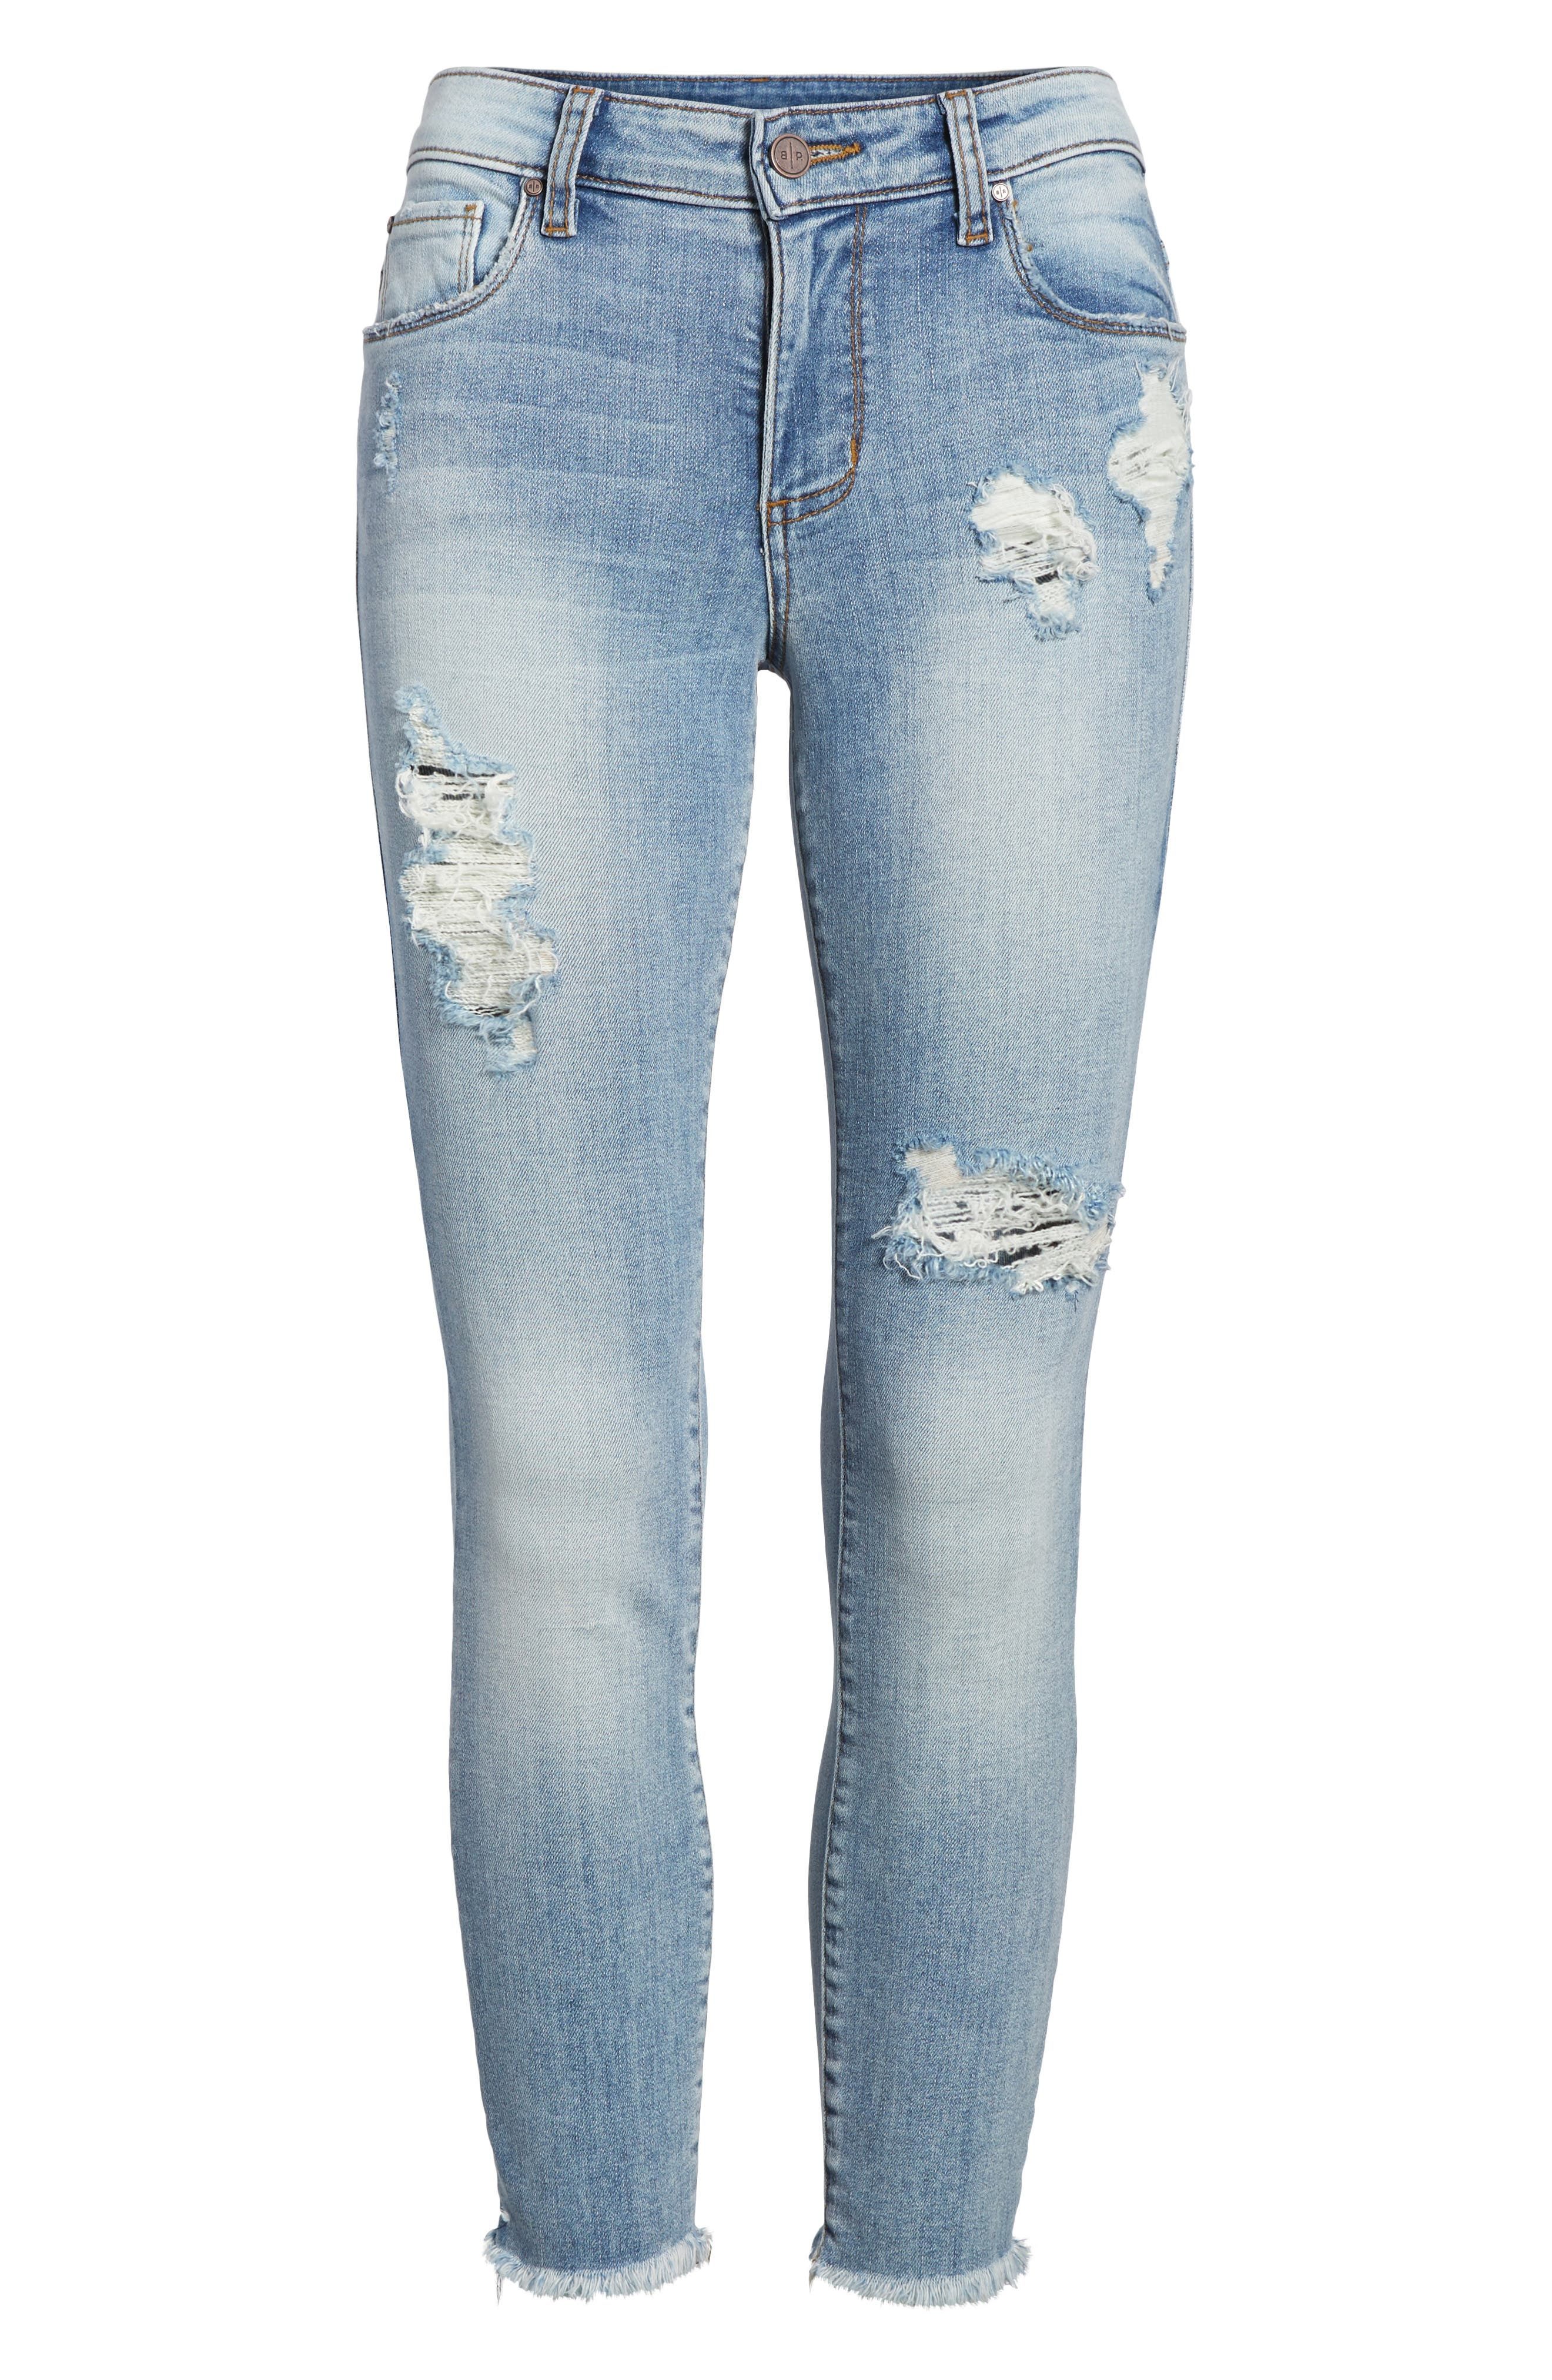 Emma Ripped Ankle Skinny Jeans,                             Alternate thumbnail 7, color,                             Medium Wash